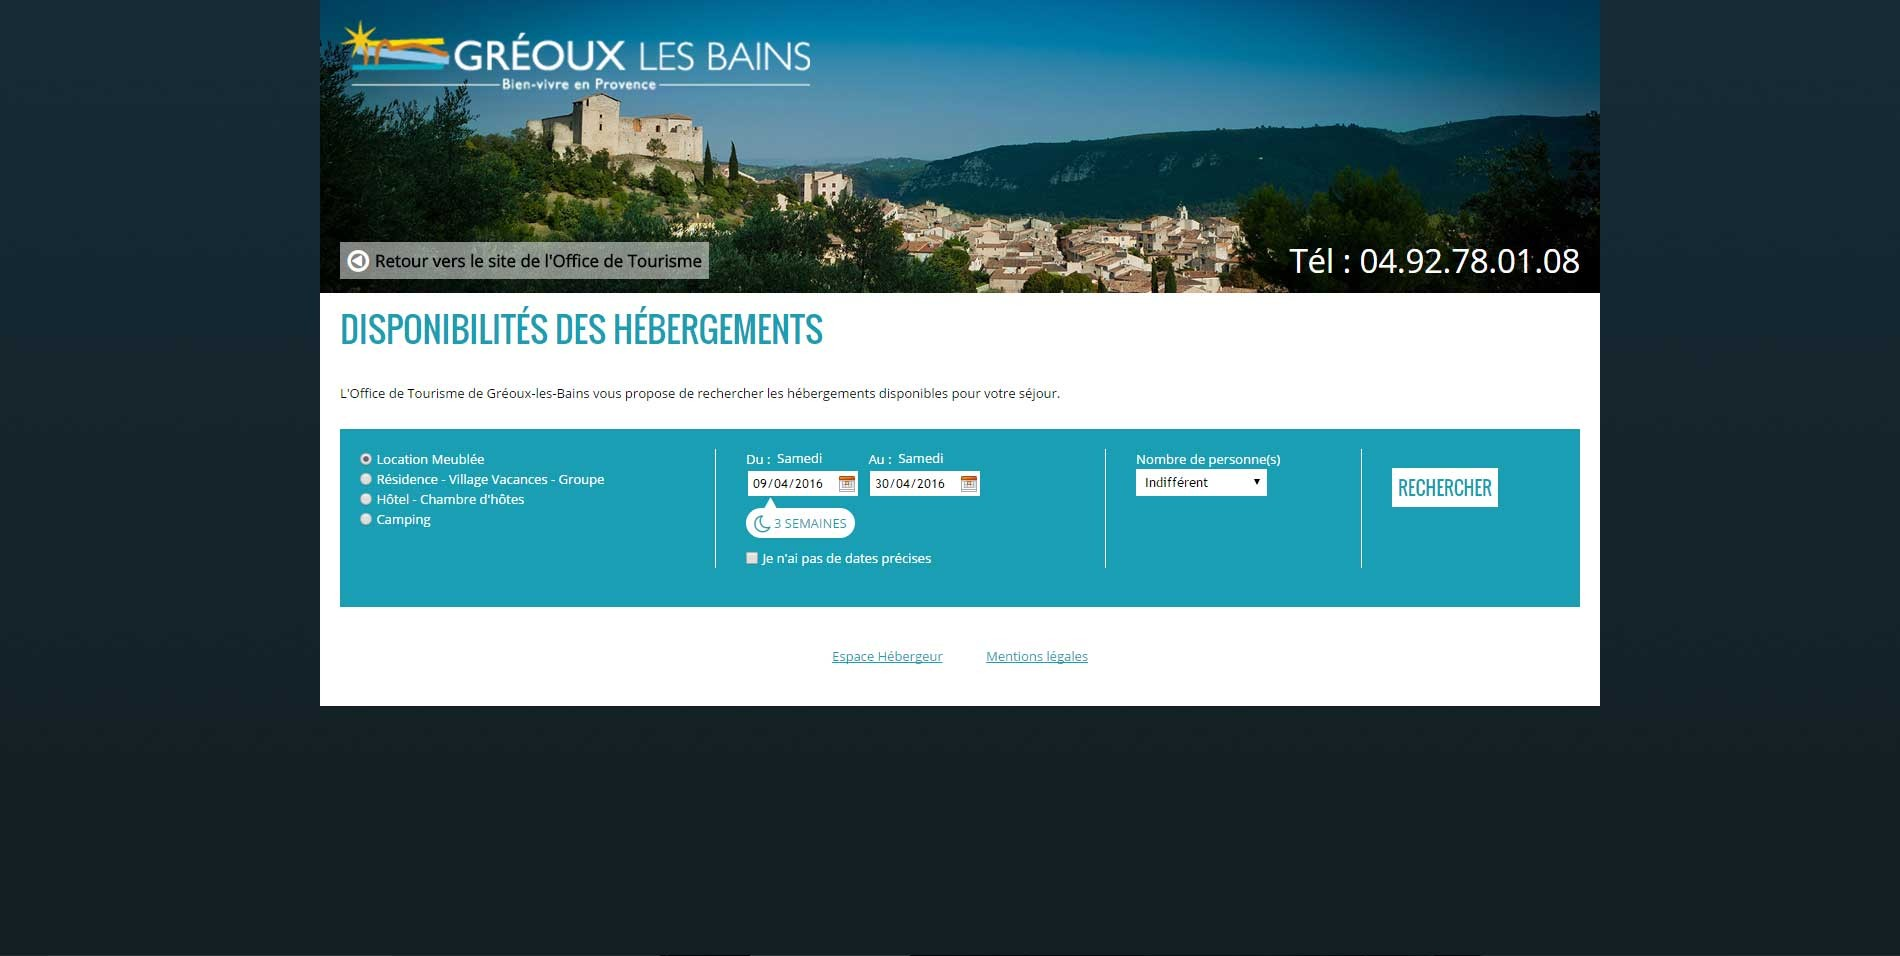 Disponibilit s sur internet disponibilit s des h bergements - Office de tourisme les contamines montjoie ...